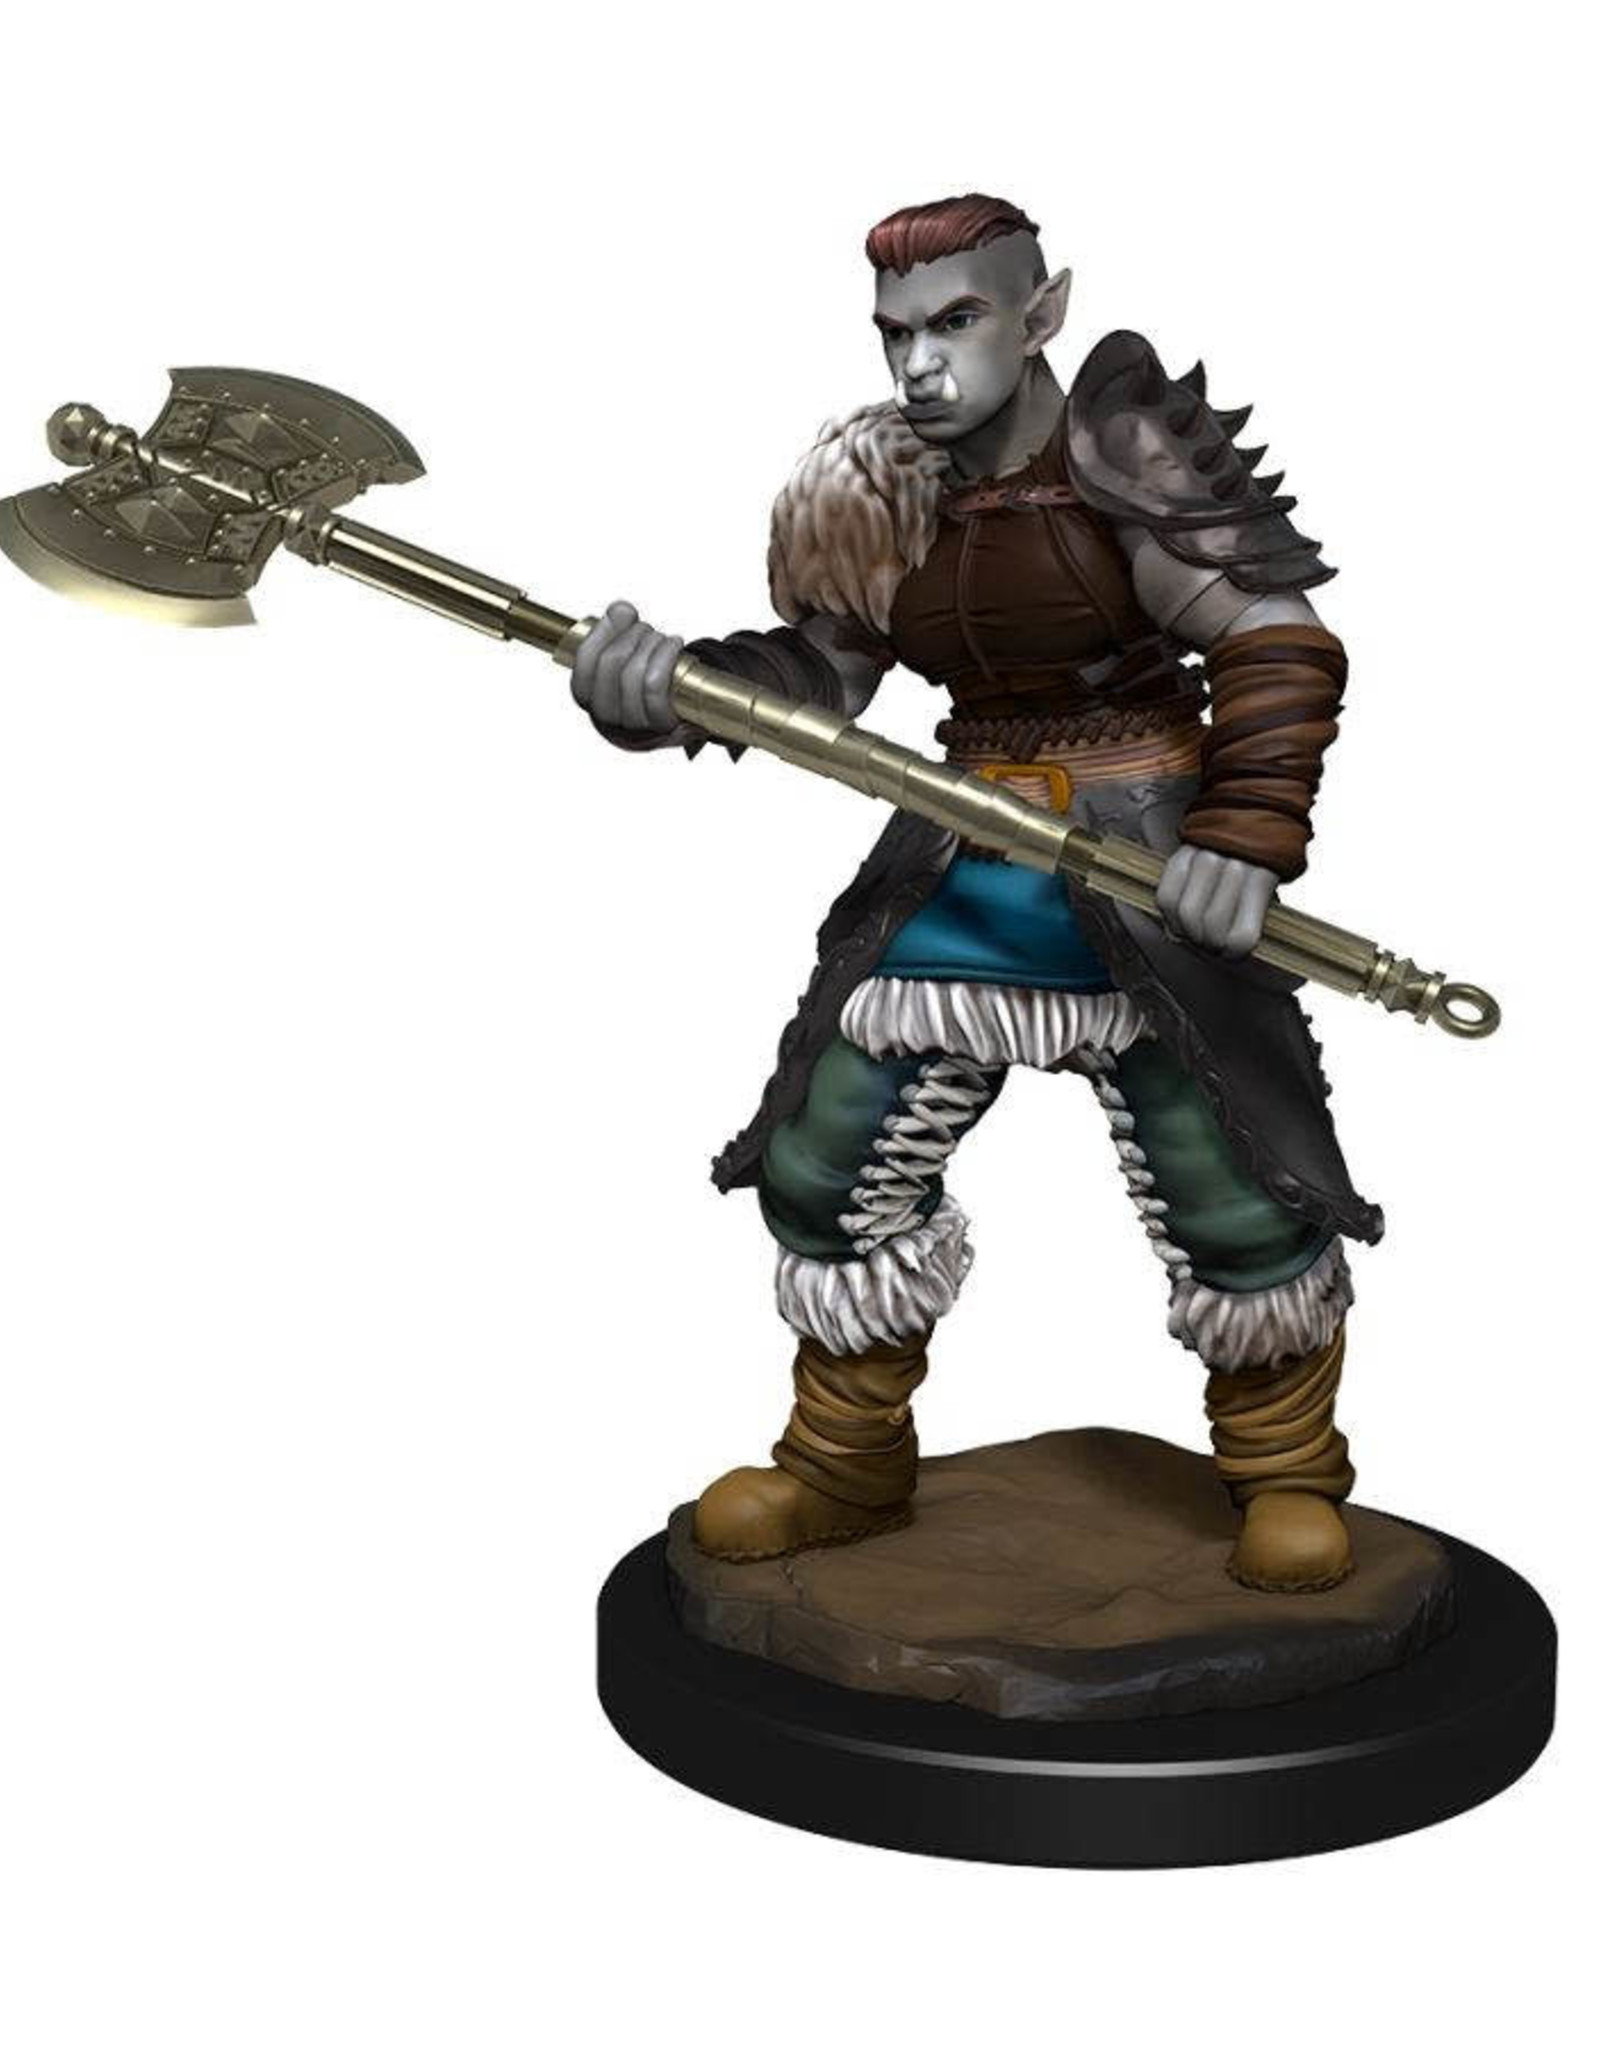 Wizkids Dungeons And Dragons Nolzur's Marvelous Miniatures: W13 Female Orc Barbarian